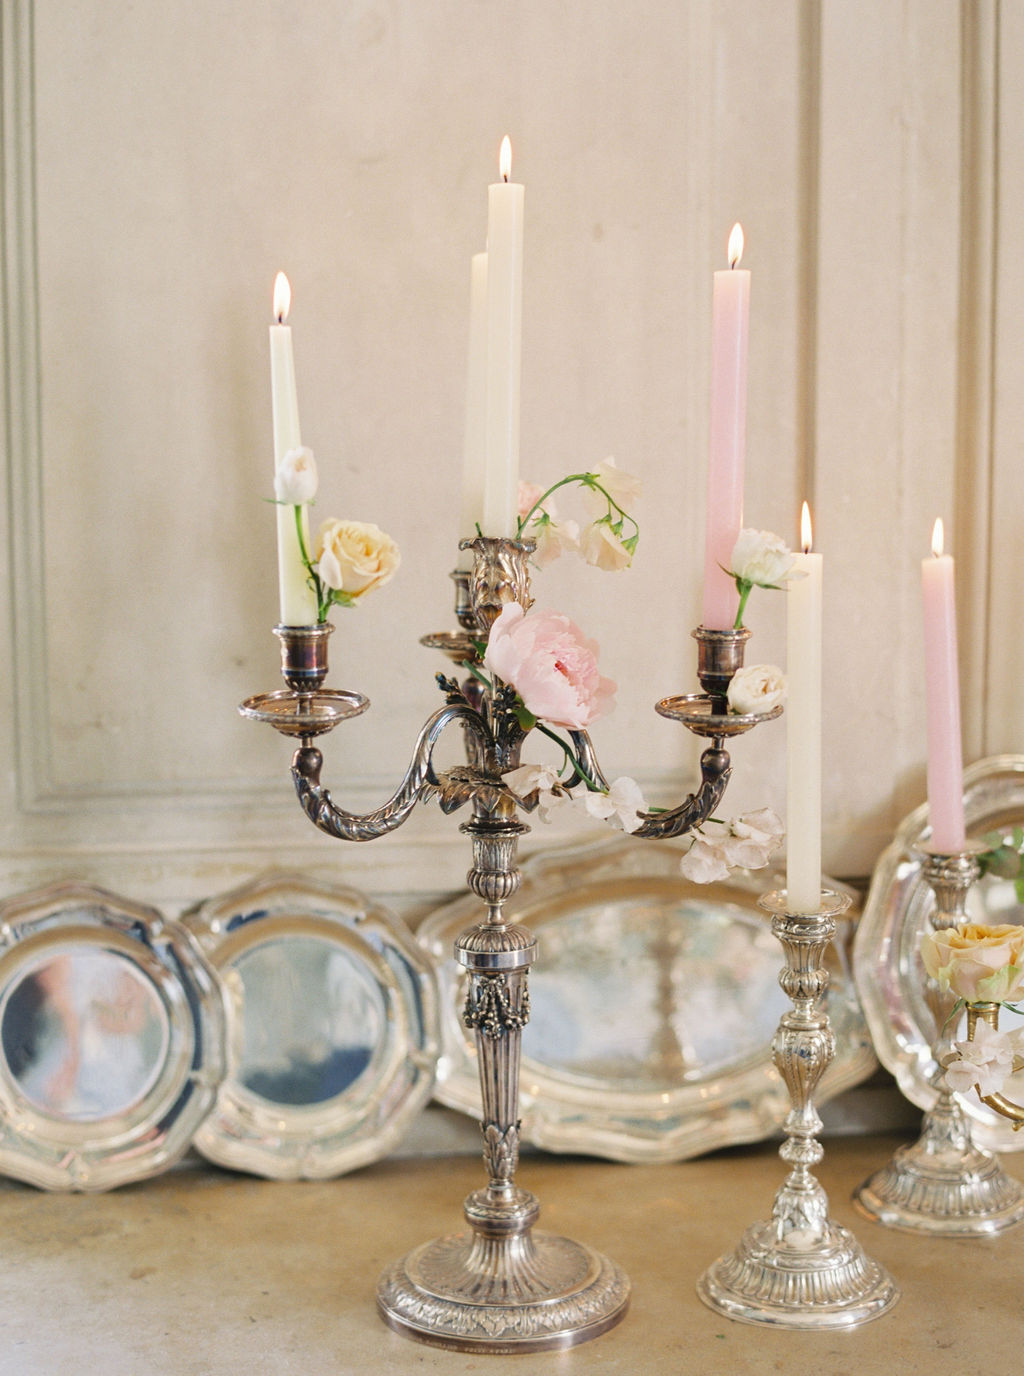 travellur_photoshoot_duchesse_de_villette_style_me_pretty_candle_sticks_french_beauty_table_top_wedding.jpg